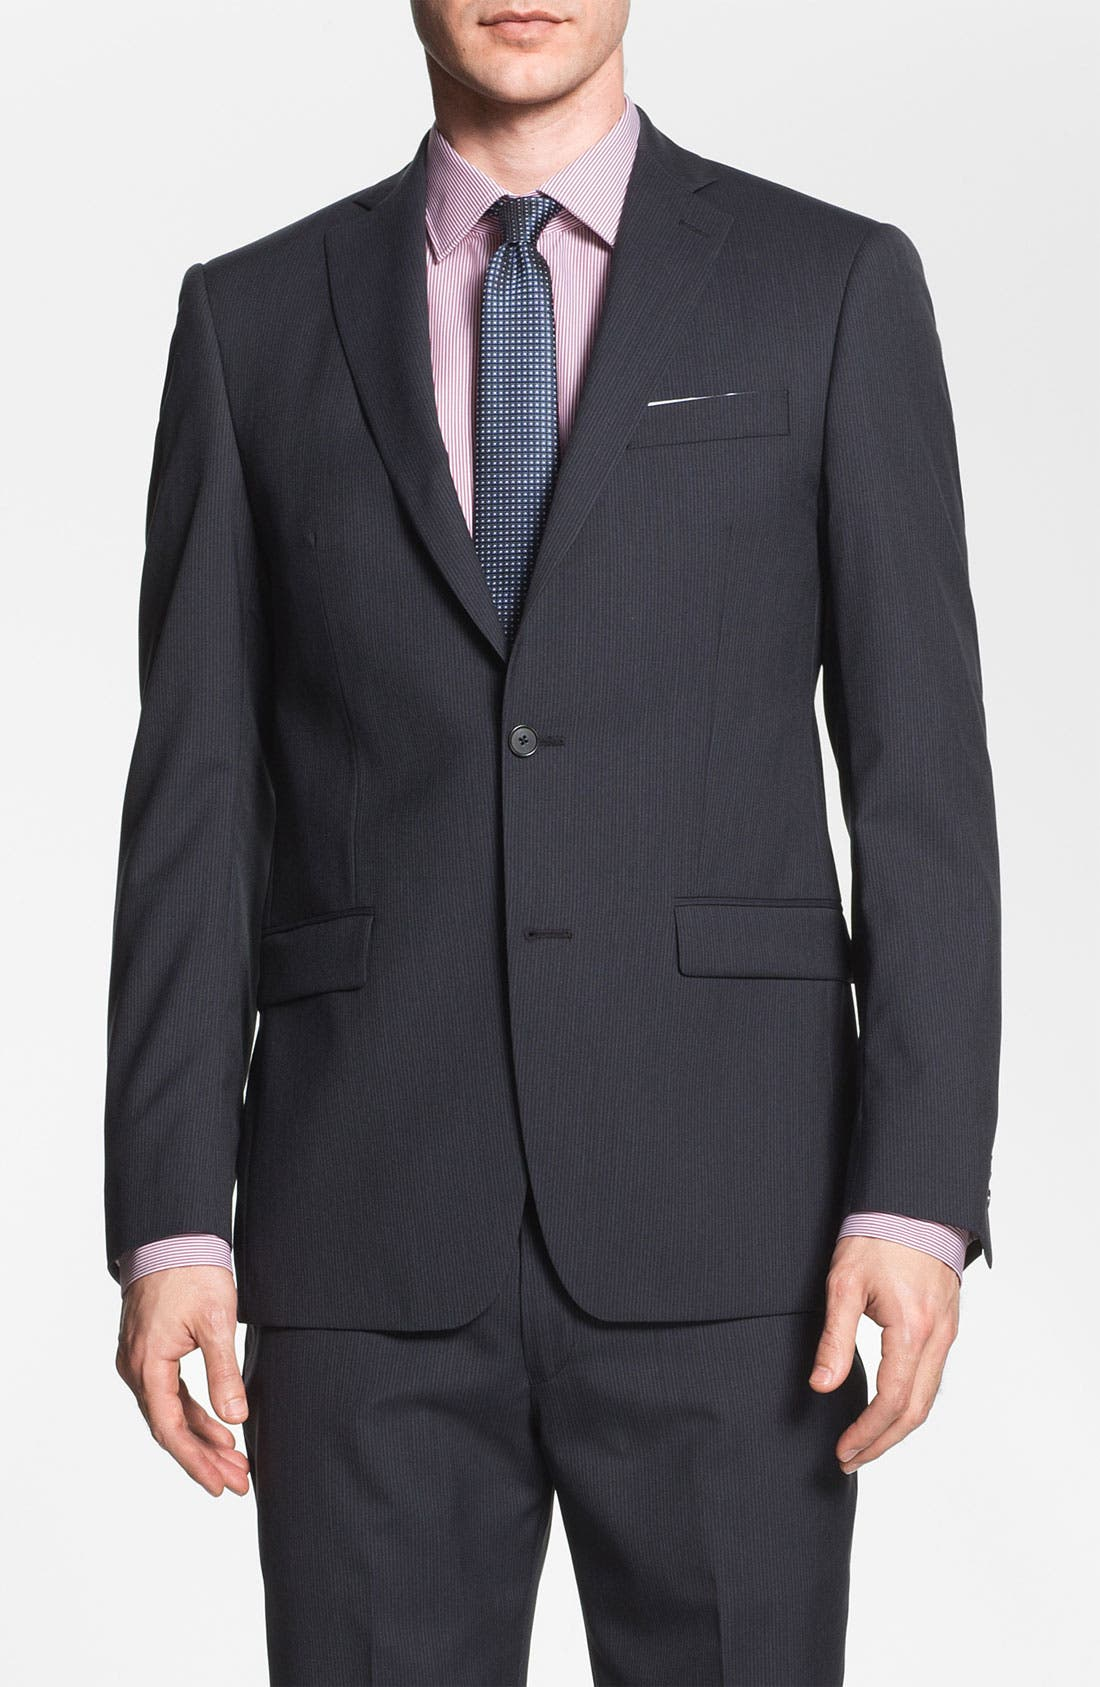 Alternate Image 1 Selected - Michael Kors Trim Fit Stripe Suit